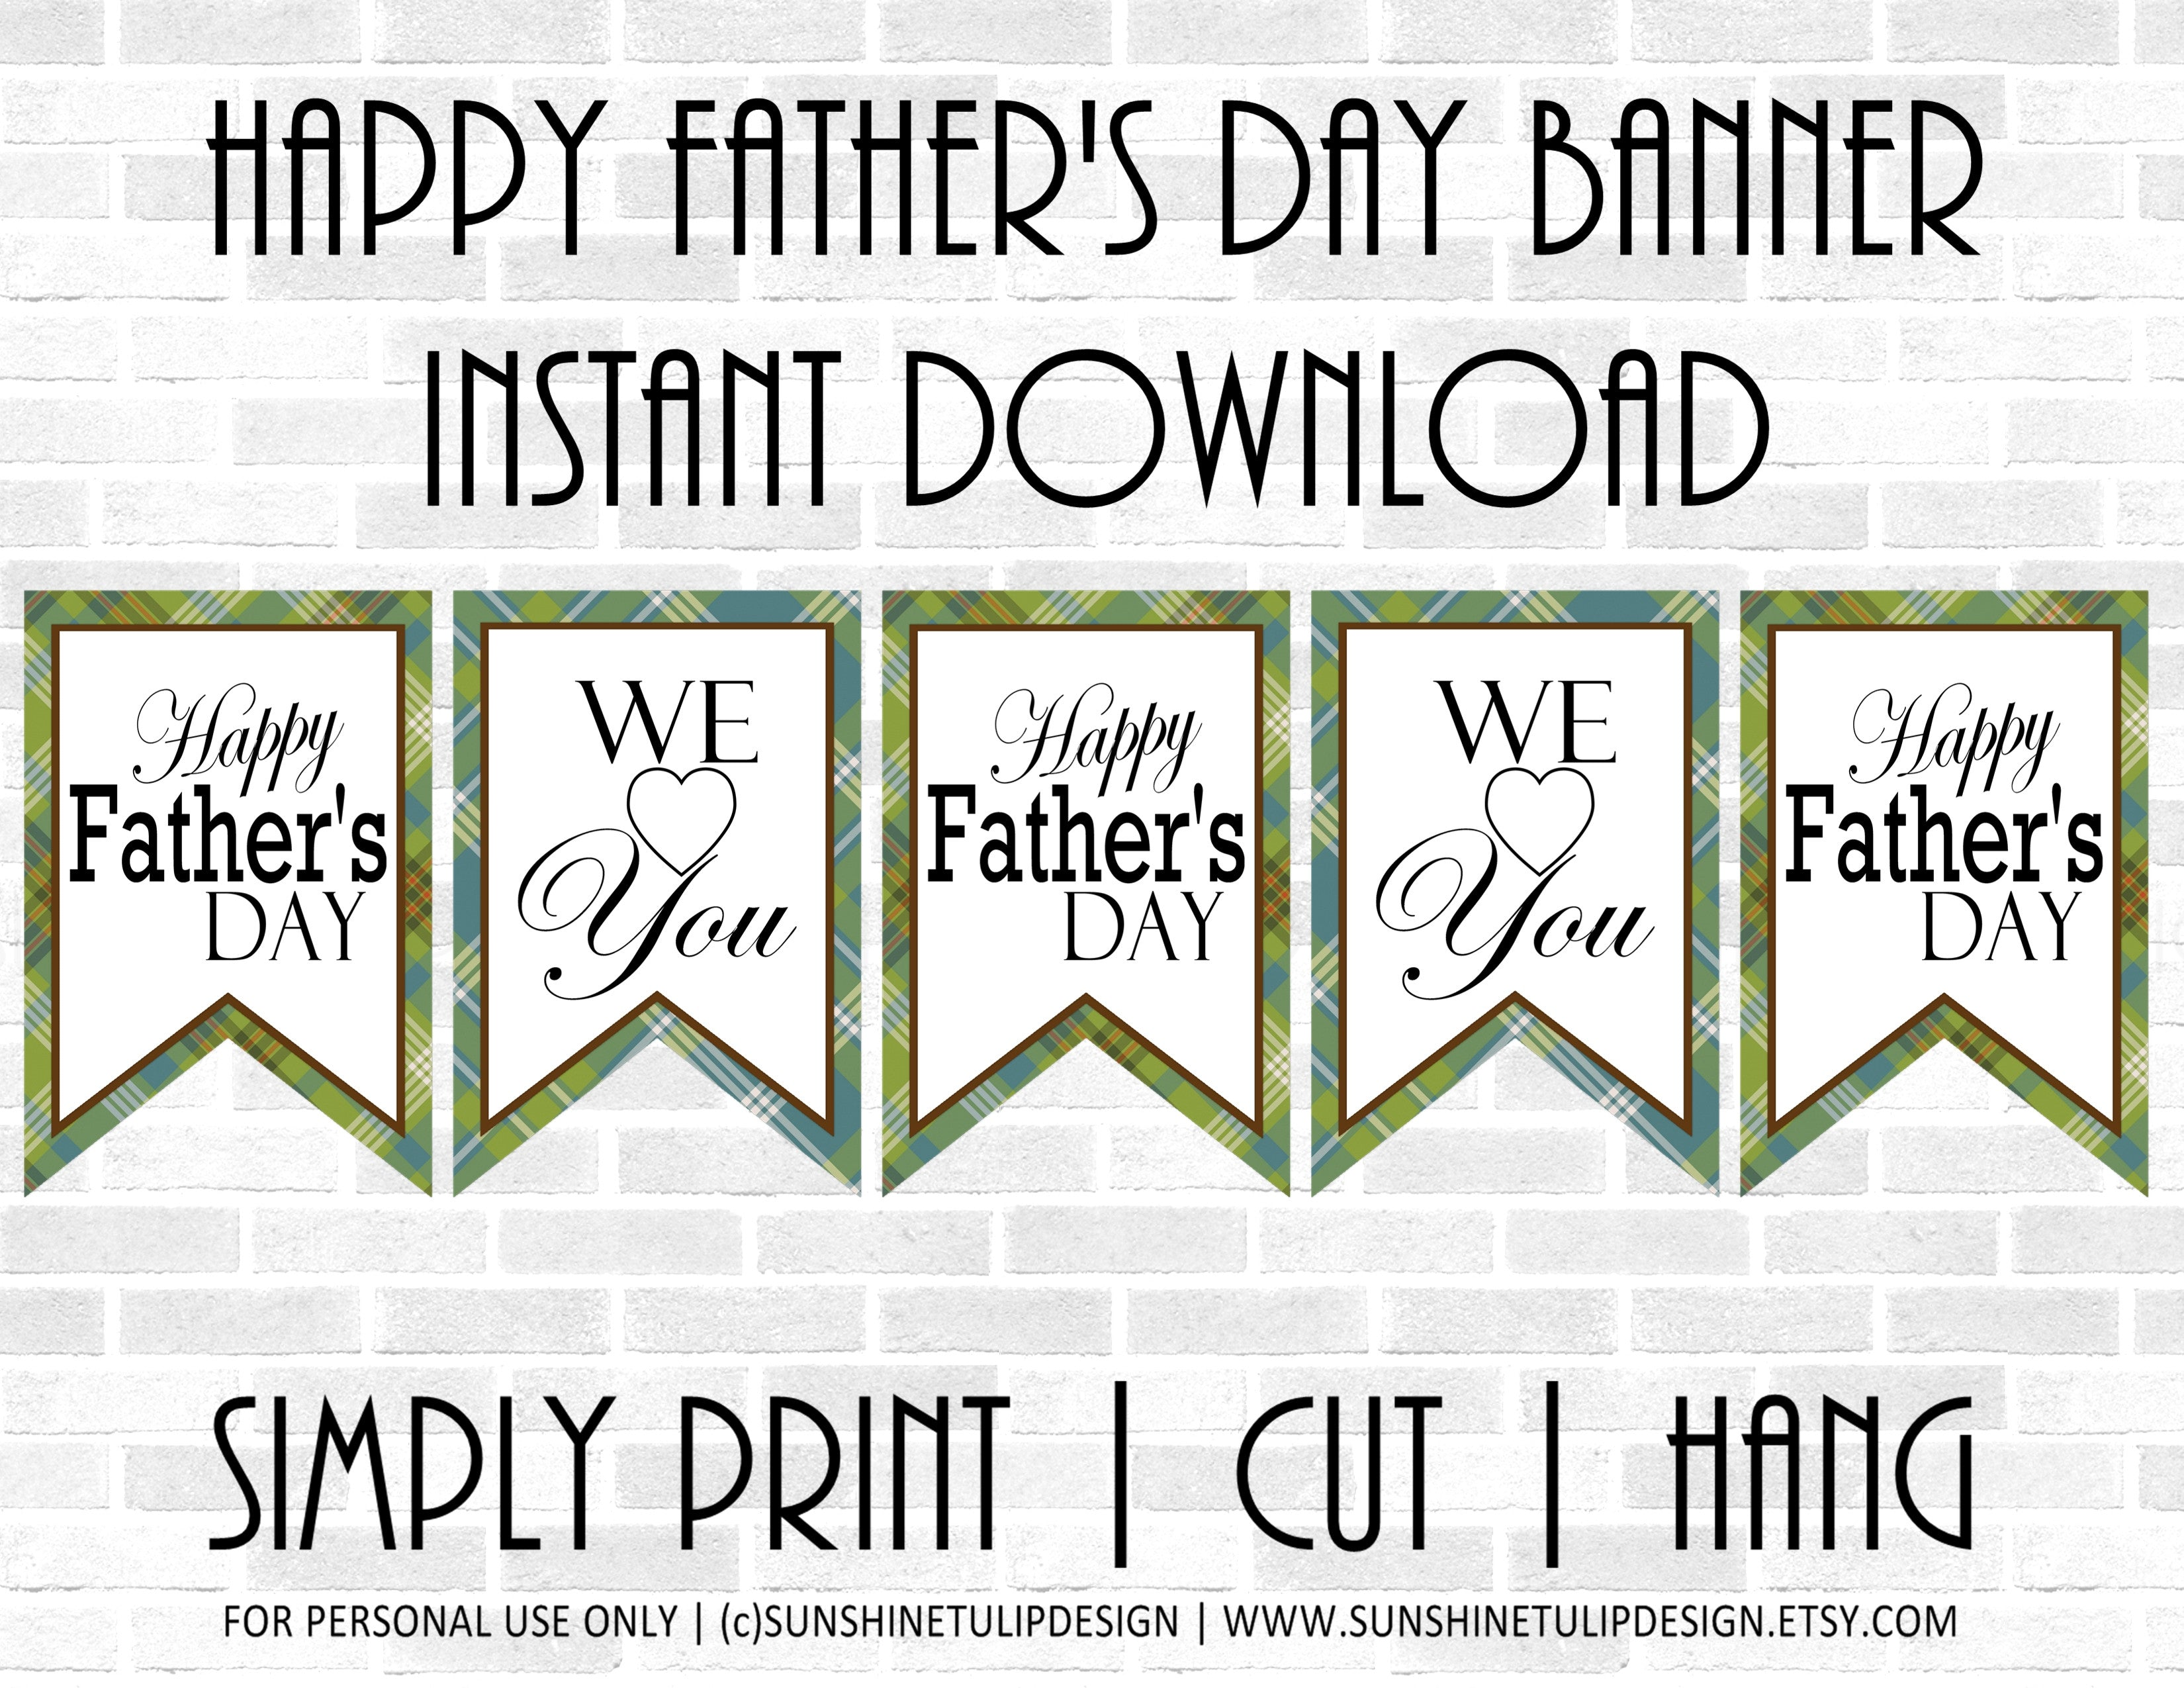 photograph regarding Happy Father's Day Banner Printable identify Printable Content Fathers Working day Banner, Printable Plaid Fathers Working day Occasion Banner via SUNSHINETULIPDESIGN